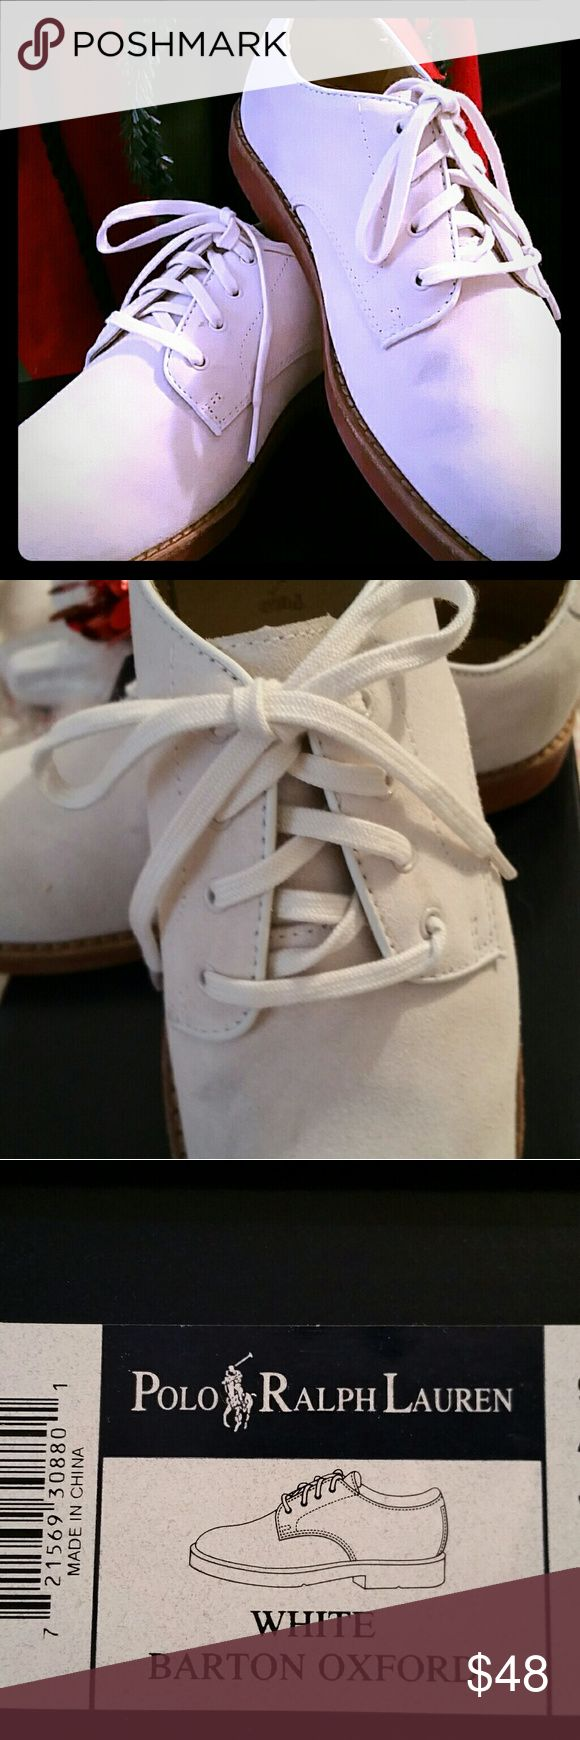 Boys 3.5 Polo Ralph Lauren 🏇 Suede Oxford shoe Worn once, maybe twice, Like New😄 Suede in a nice Winter cream. Leather-lined with a padded foam insole. Molded leather outsole with raised pebble treads. Comes in original box. Bundle-up & save even more! 😍 Polo by Ralph Lauren Shoes Dress Shoes